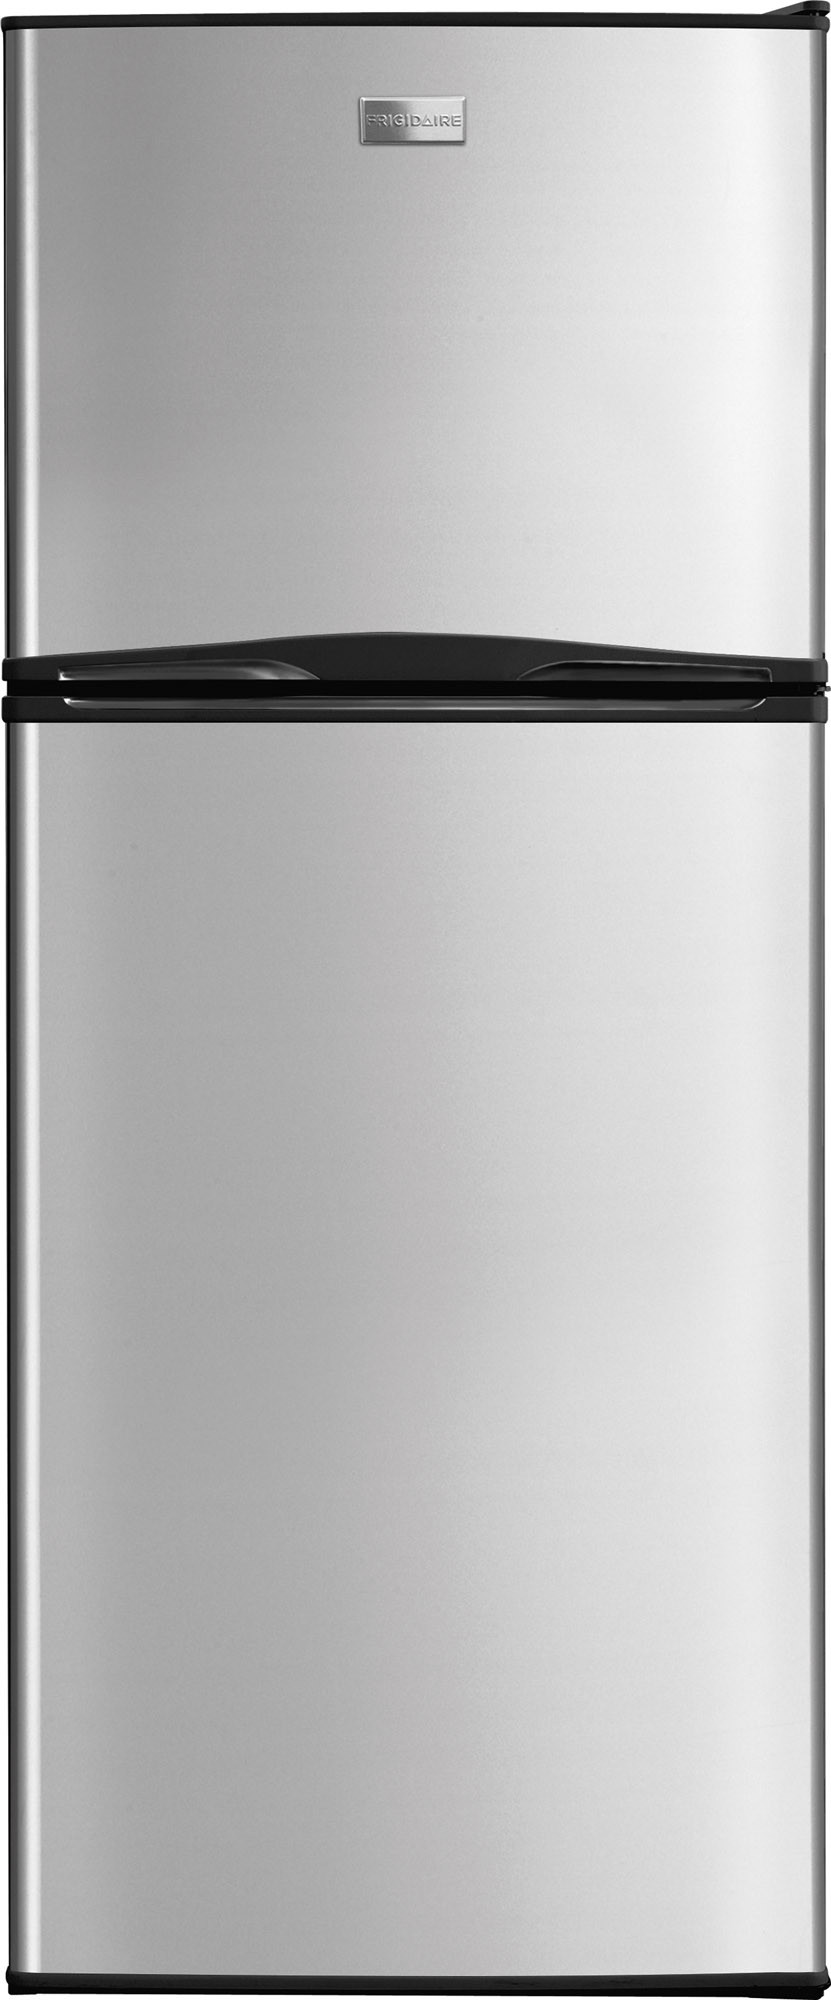 Apartment Refrigerators, Apartment Size Refrigerator | ajmadison.com